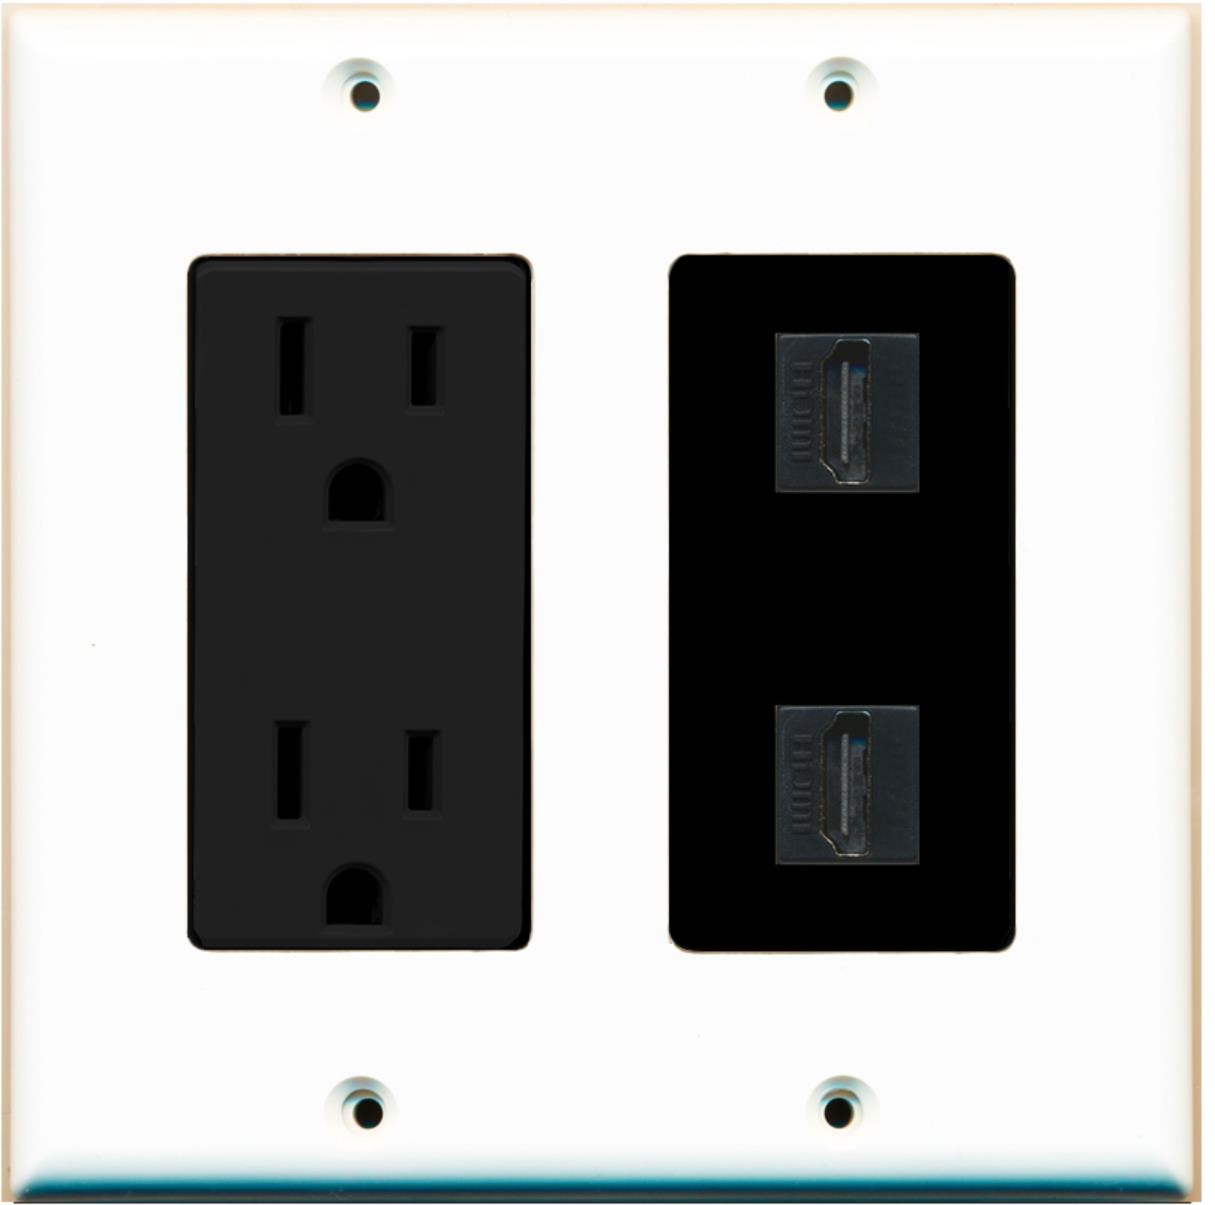 Hdmi Outlet Riteav 15 Amp Power Outlet 2 Port Hdmi Decora Wall Plate White Black